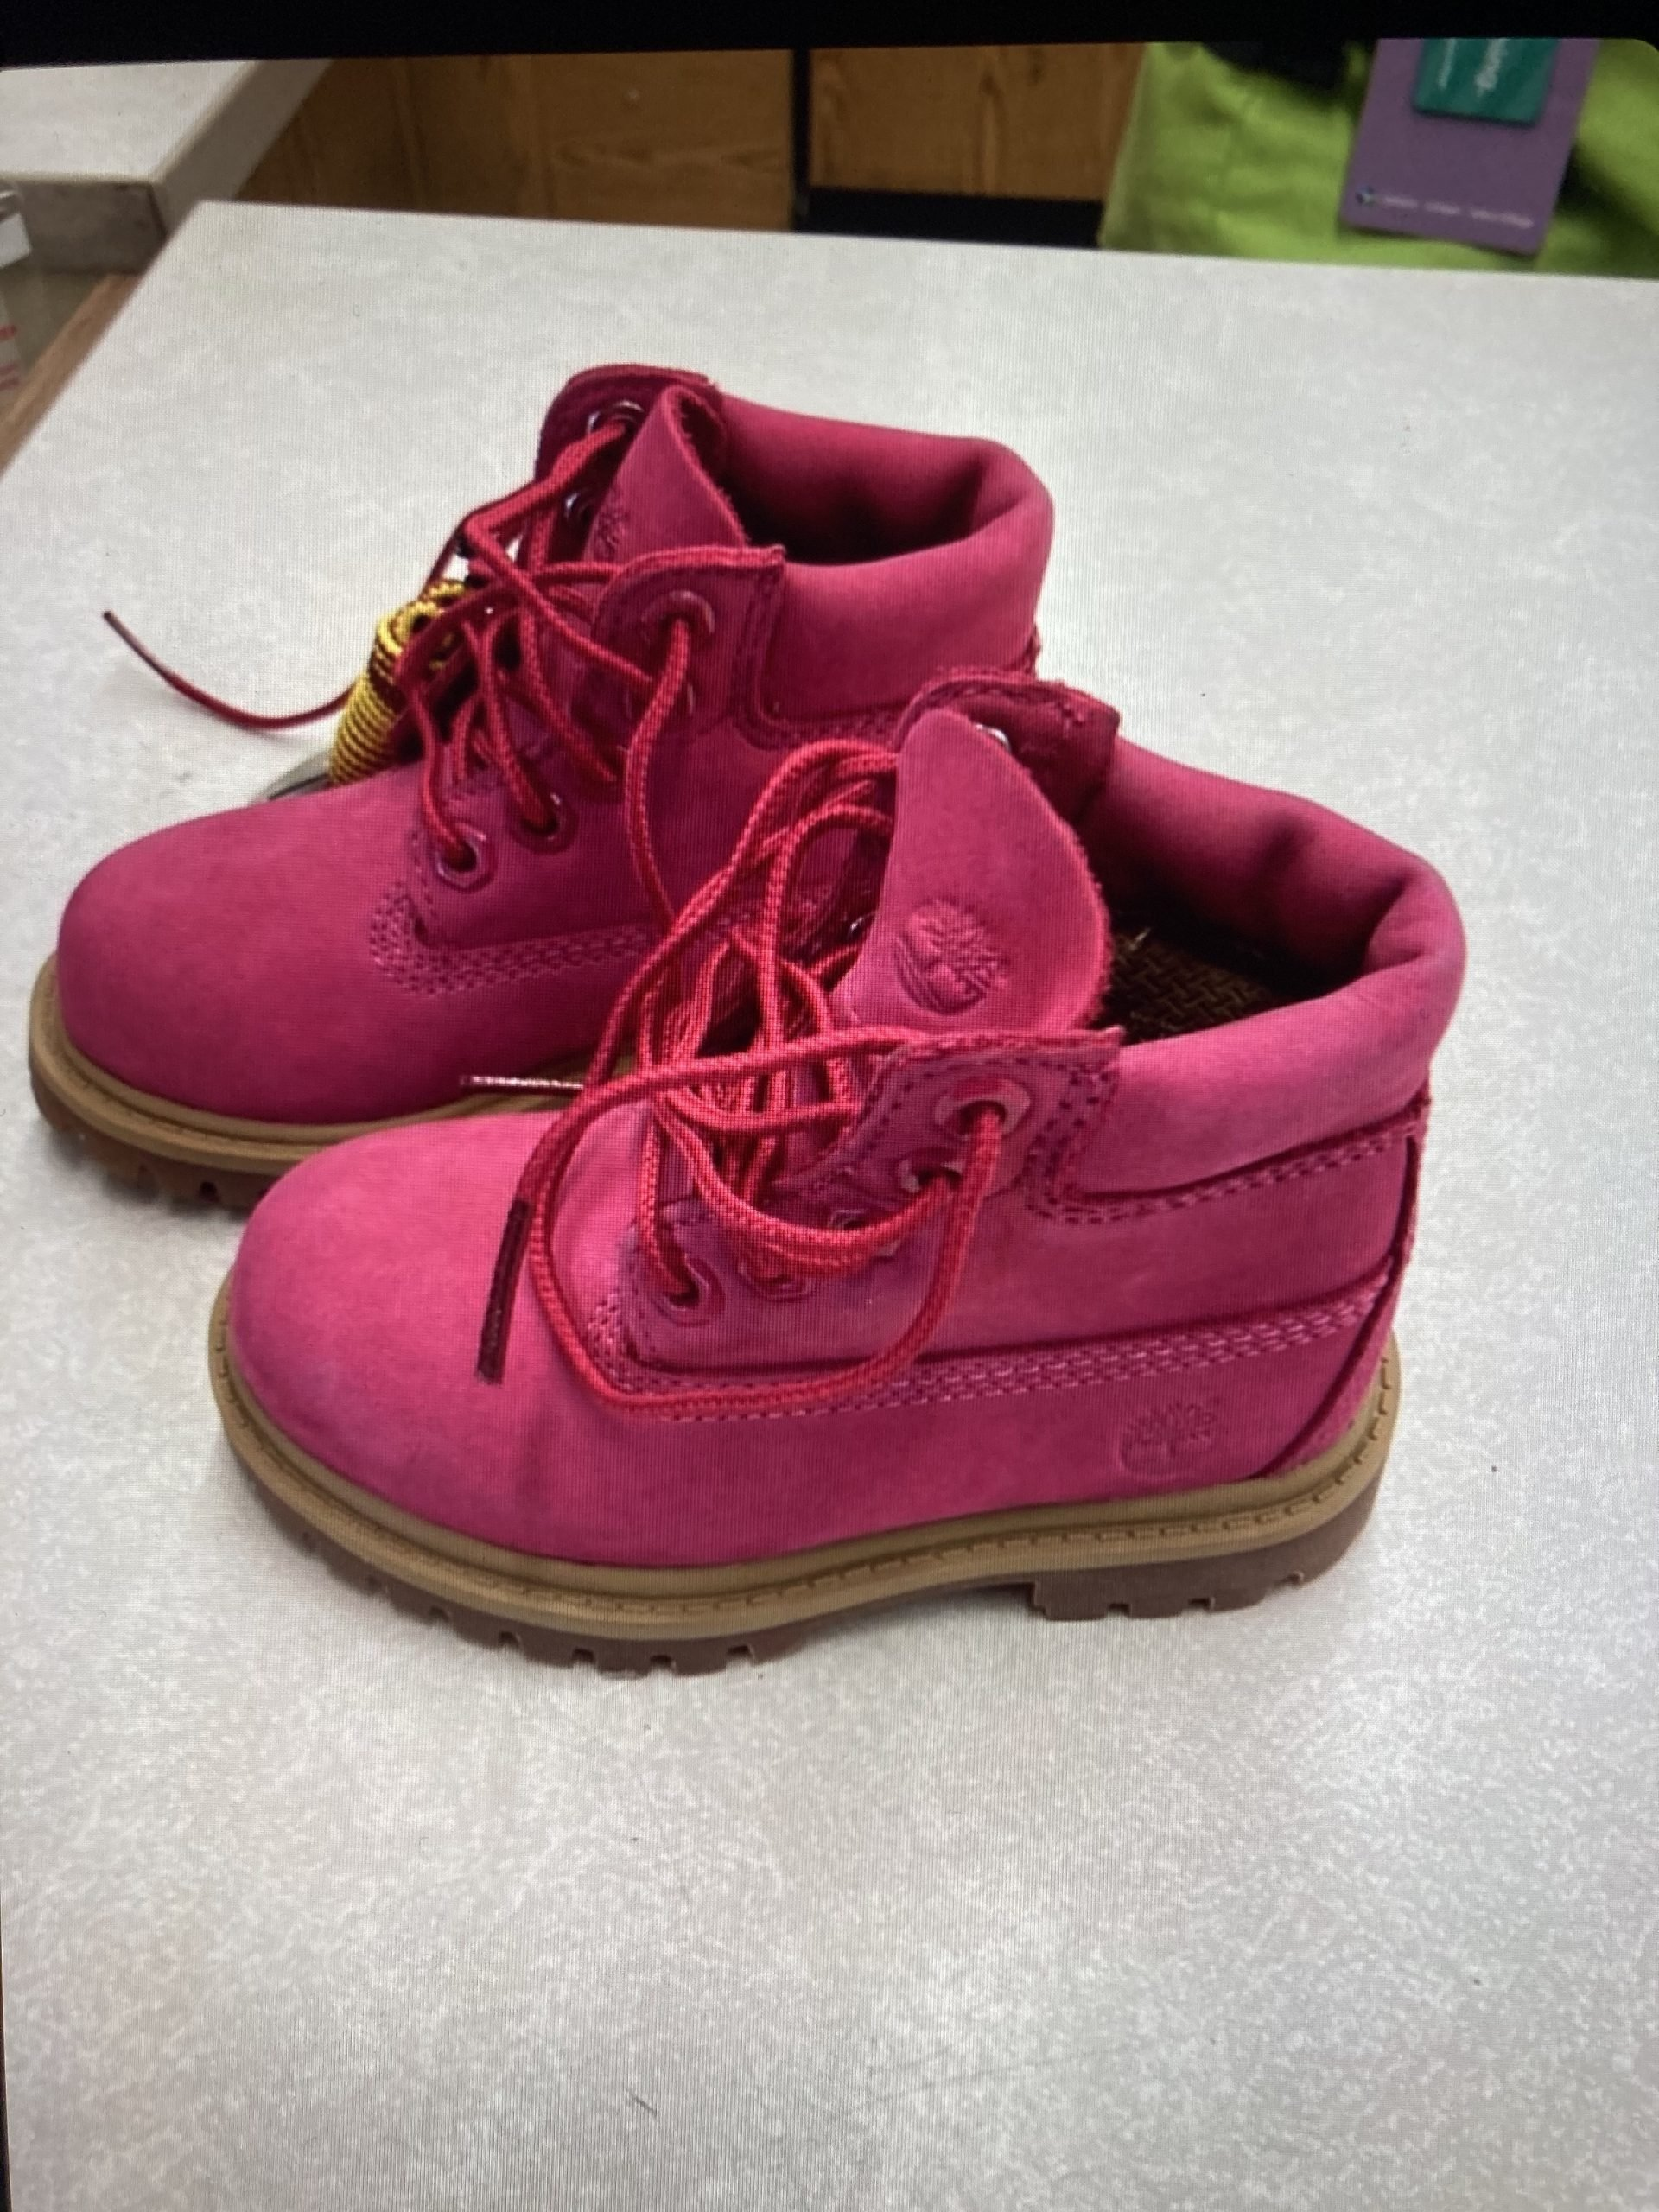 pink Timberland boots from Unique Thrift Store